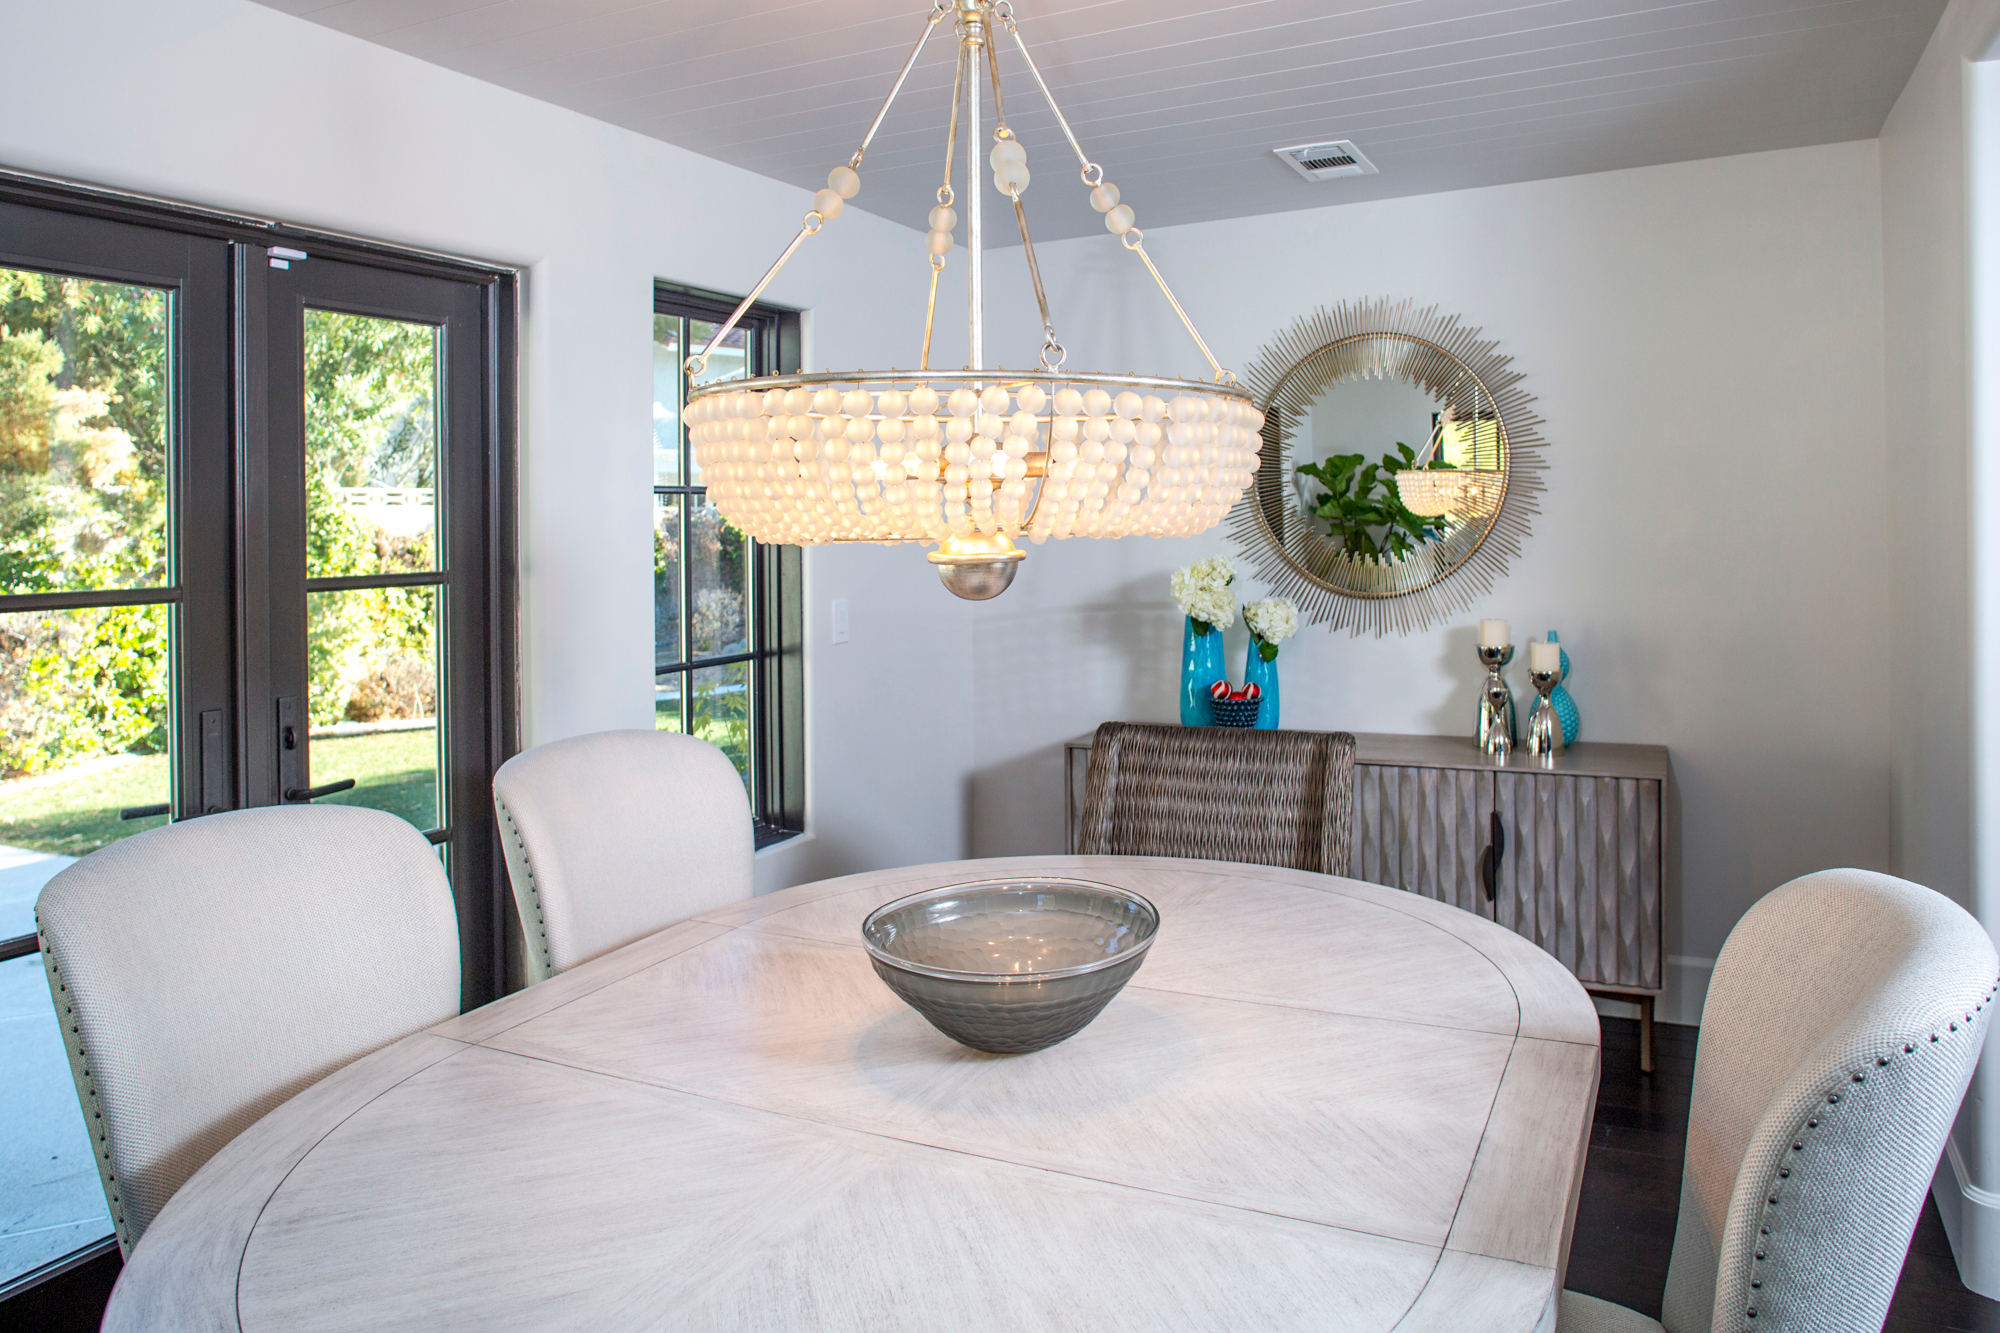 Dinning area, chandelier, shiplap ceiling with white wash wood table upholstered chairs.